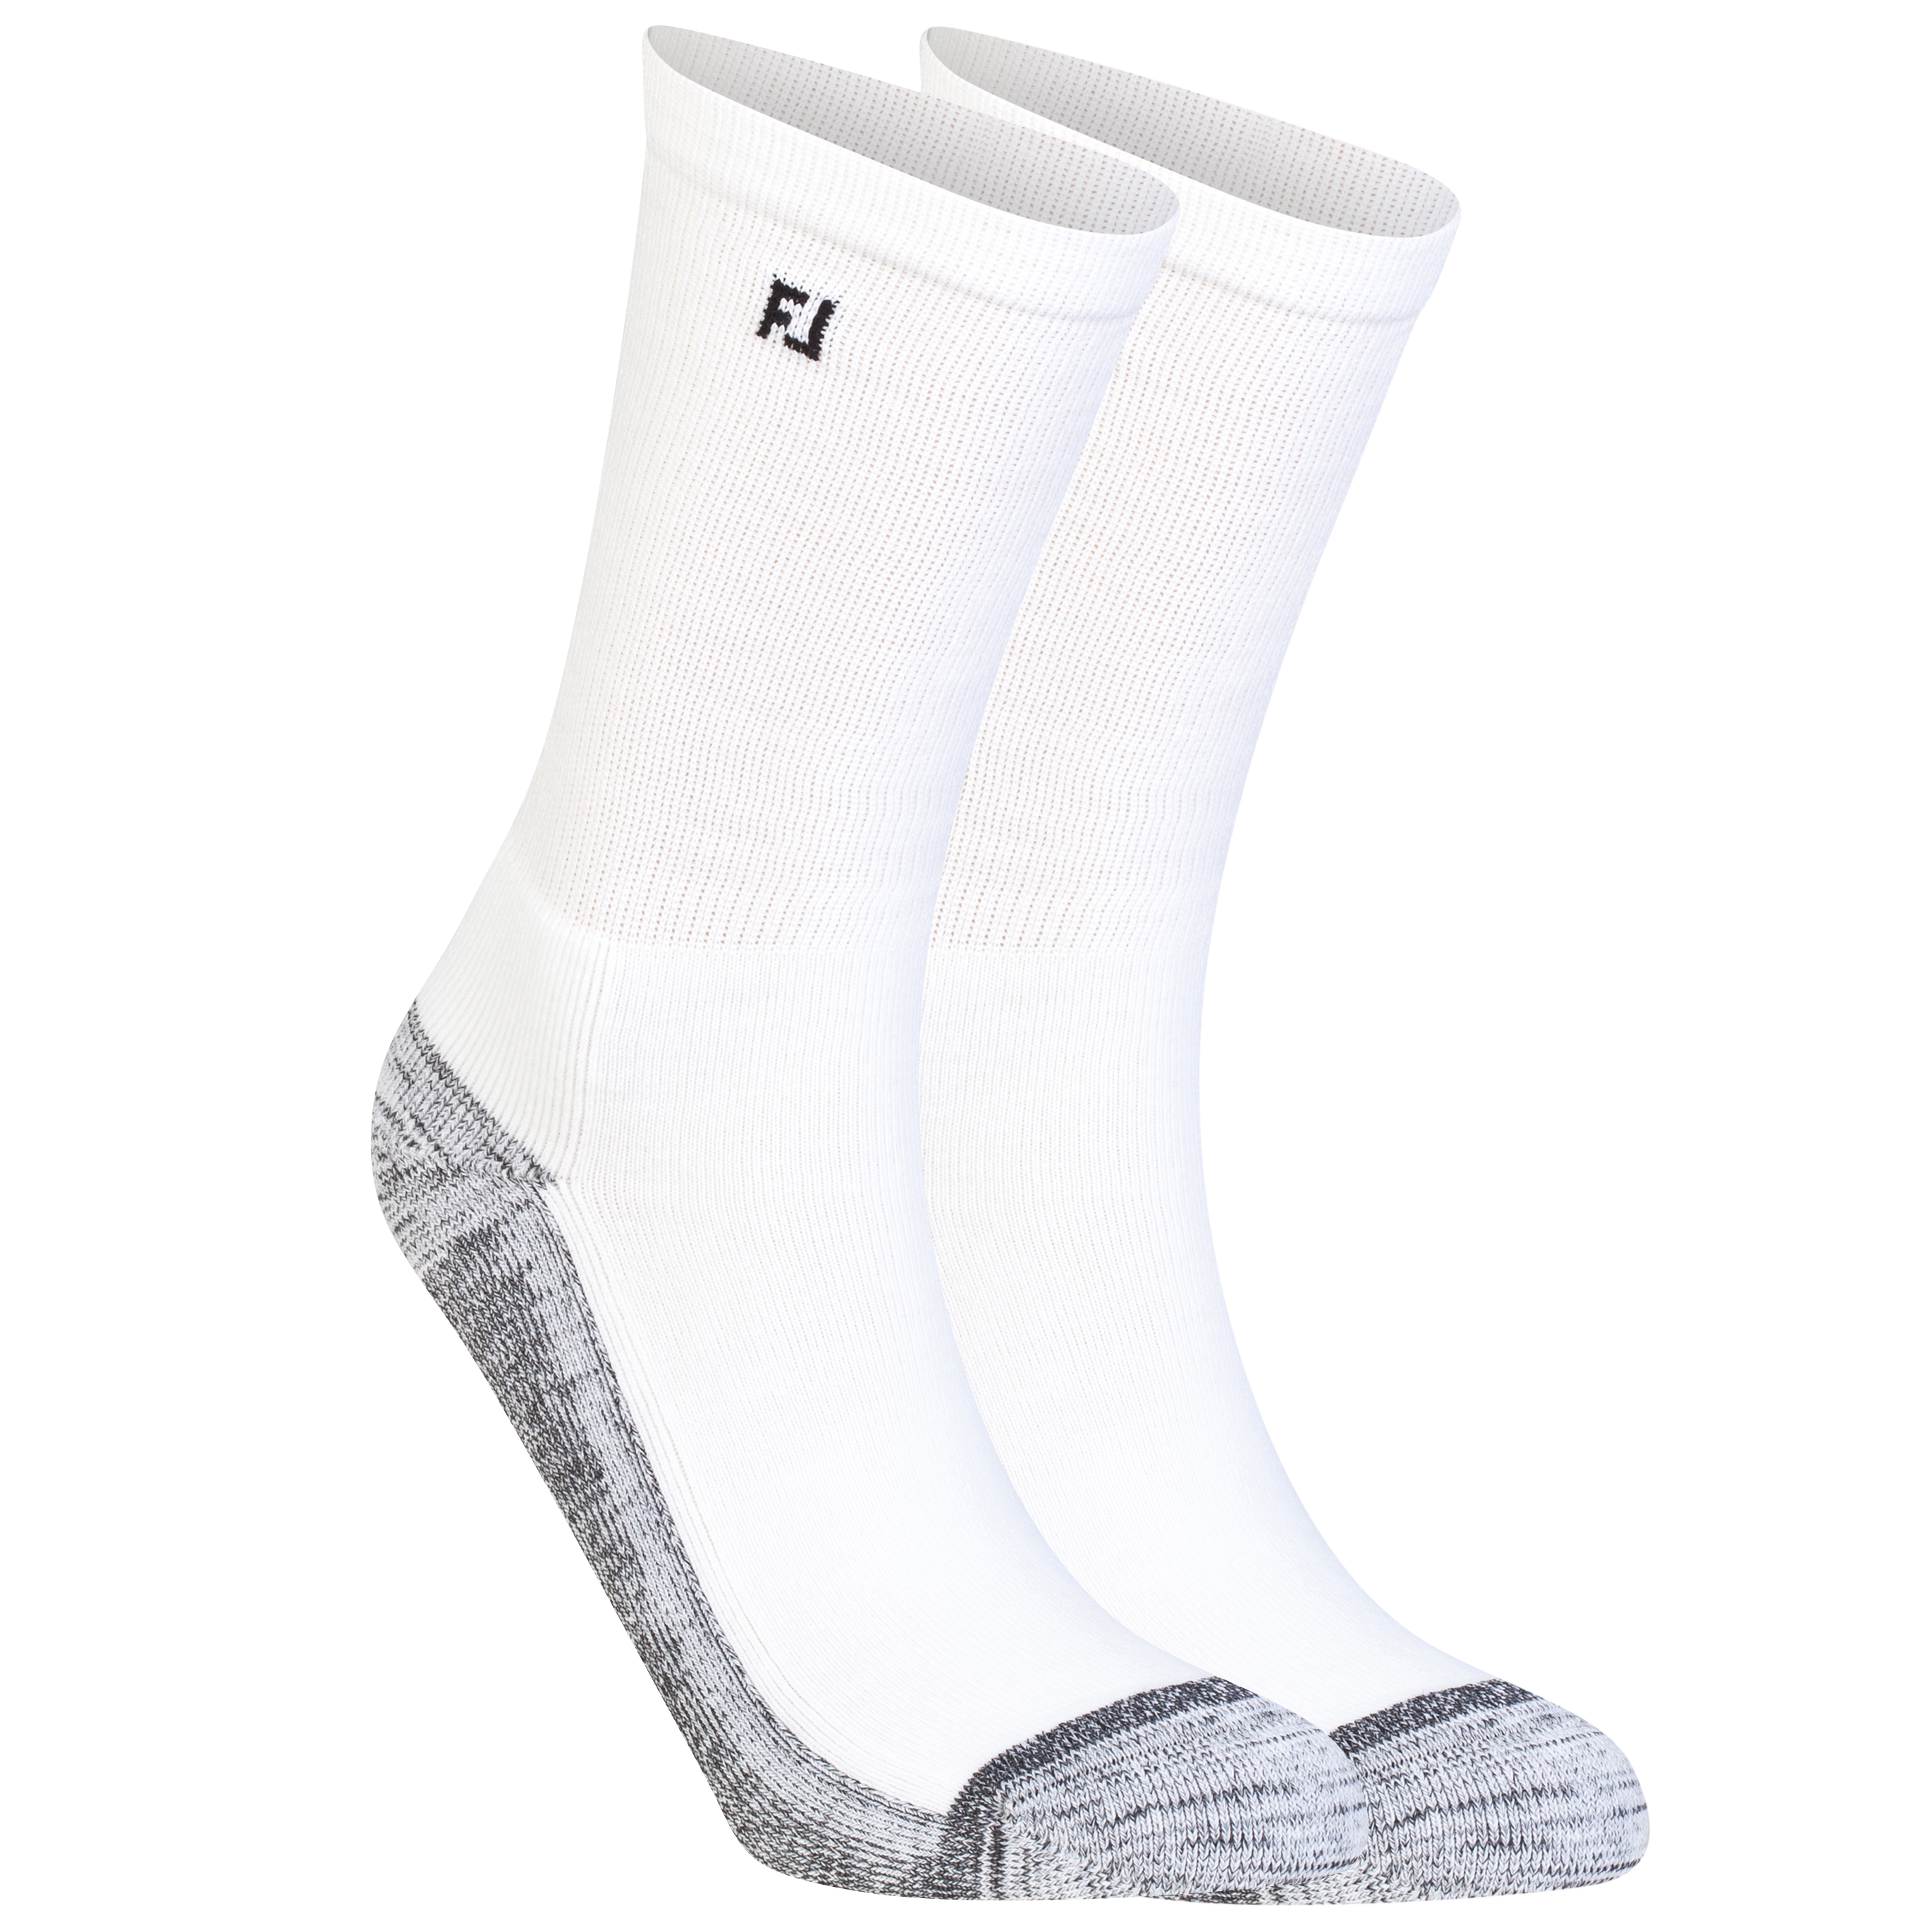 The 2014 Ryder Cup Footjoy ProDry Crew Socks - White